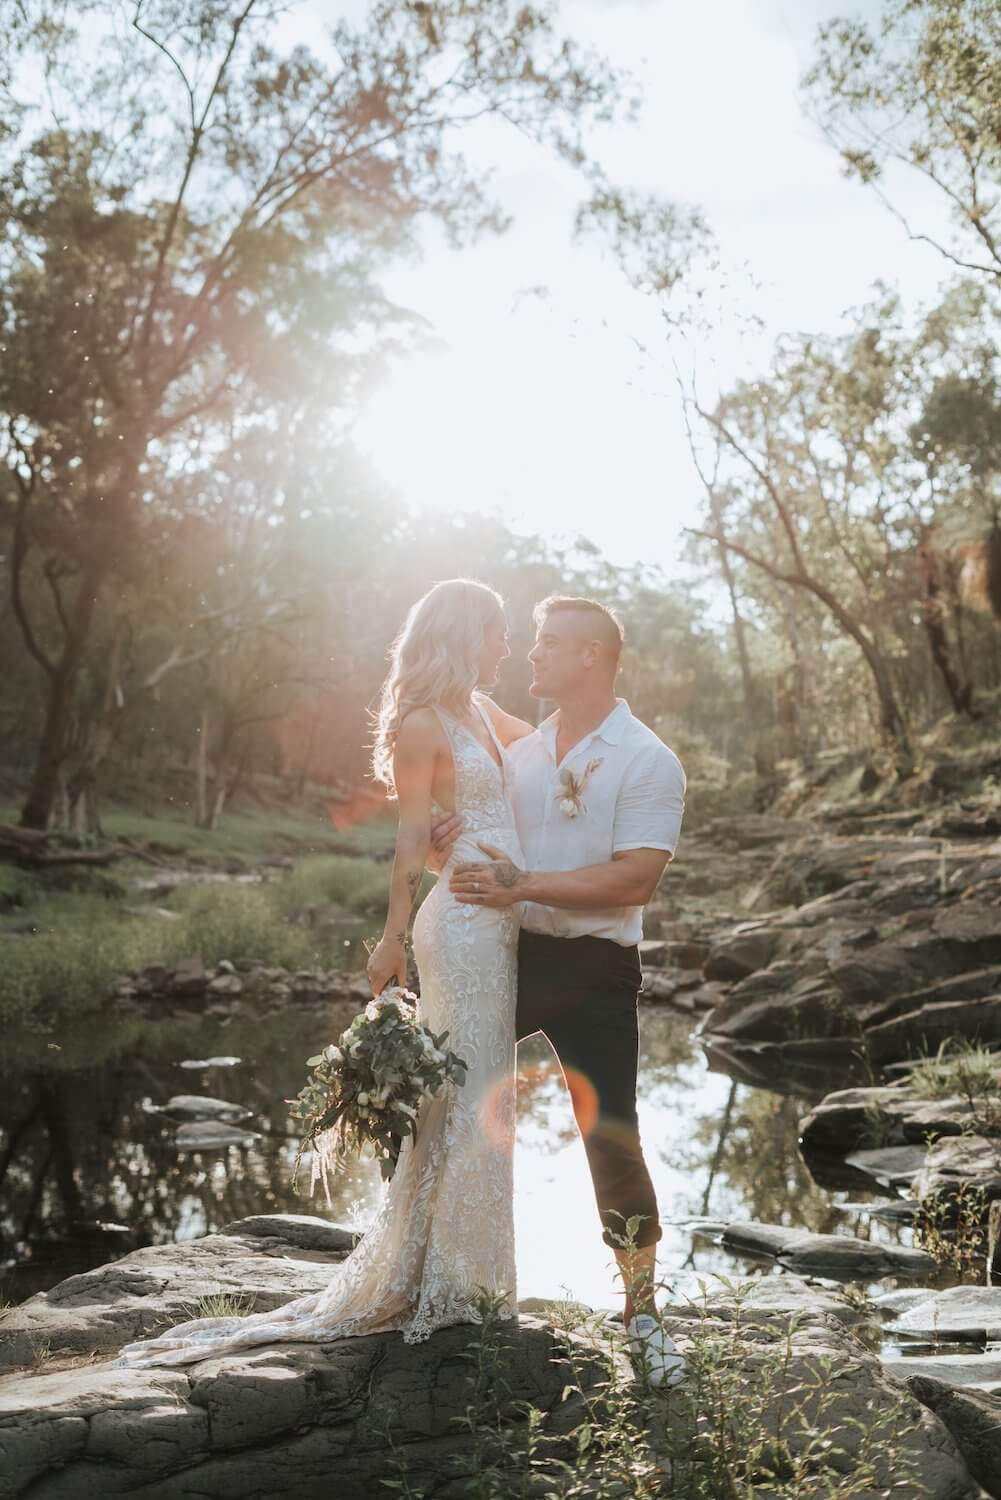 wedding planning services queensland wedding photographer queensland storybook and co dejavu photo and film